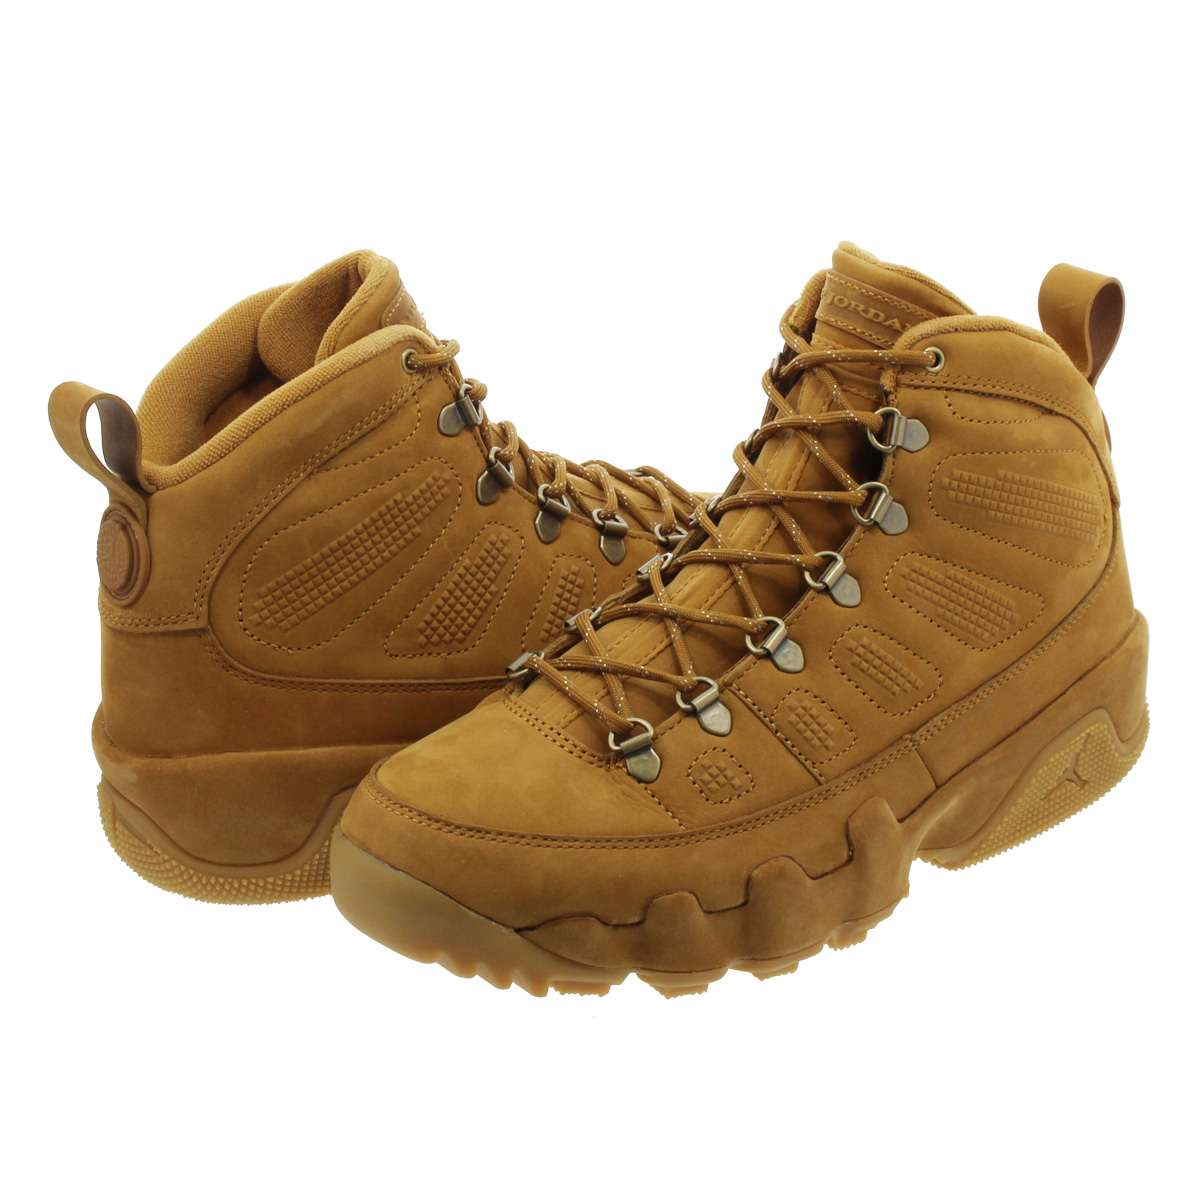 659a635ac8c LOWTEX BIG-SMALL SHOP: NIKE AIR JORDAN 9 RETRO NRG 나이키 에어 조던 ...